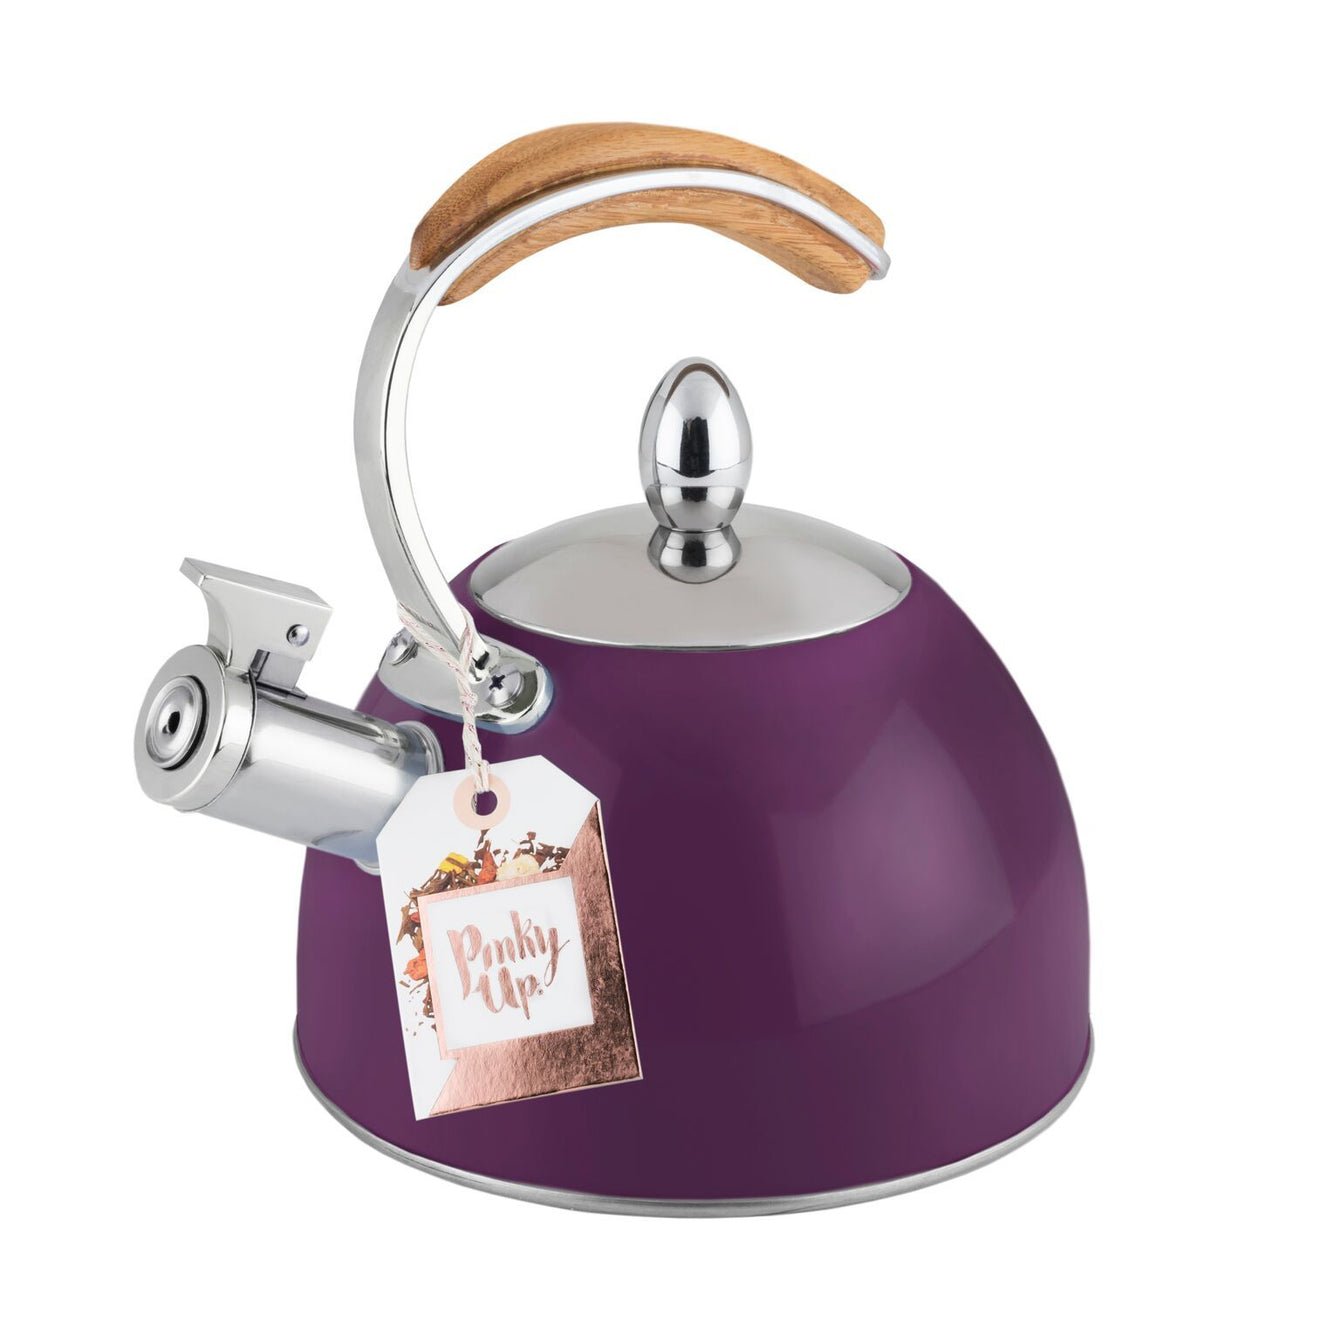 Presley Stainless Steel and Wood Tea Kettle-Home - Coffee + Tea - Tea Pots + Kettles-PINKY UP-Plum-Peccadilly